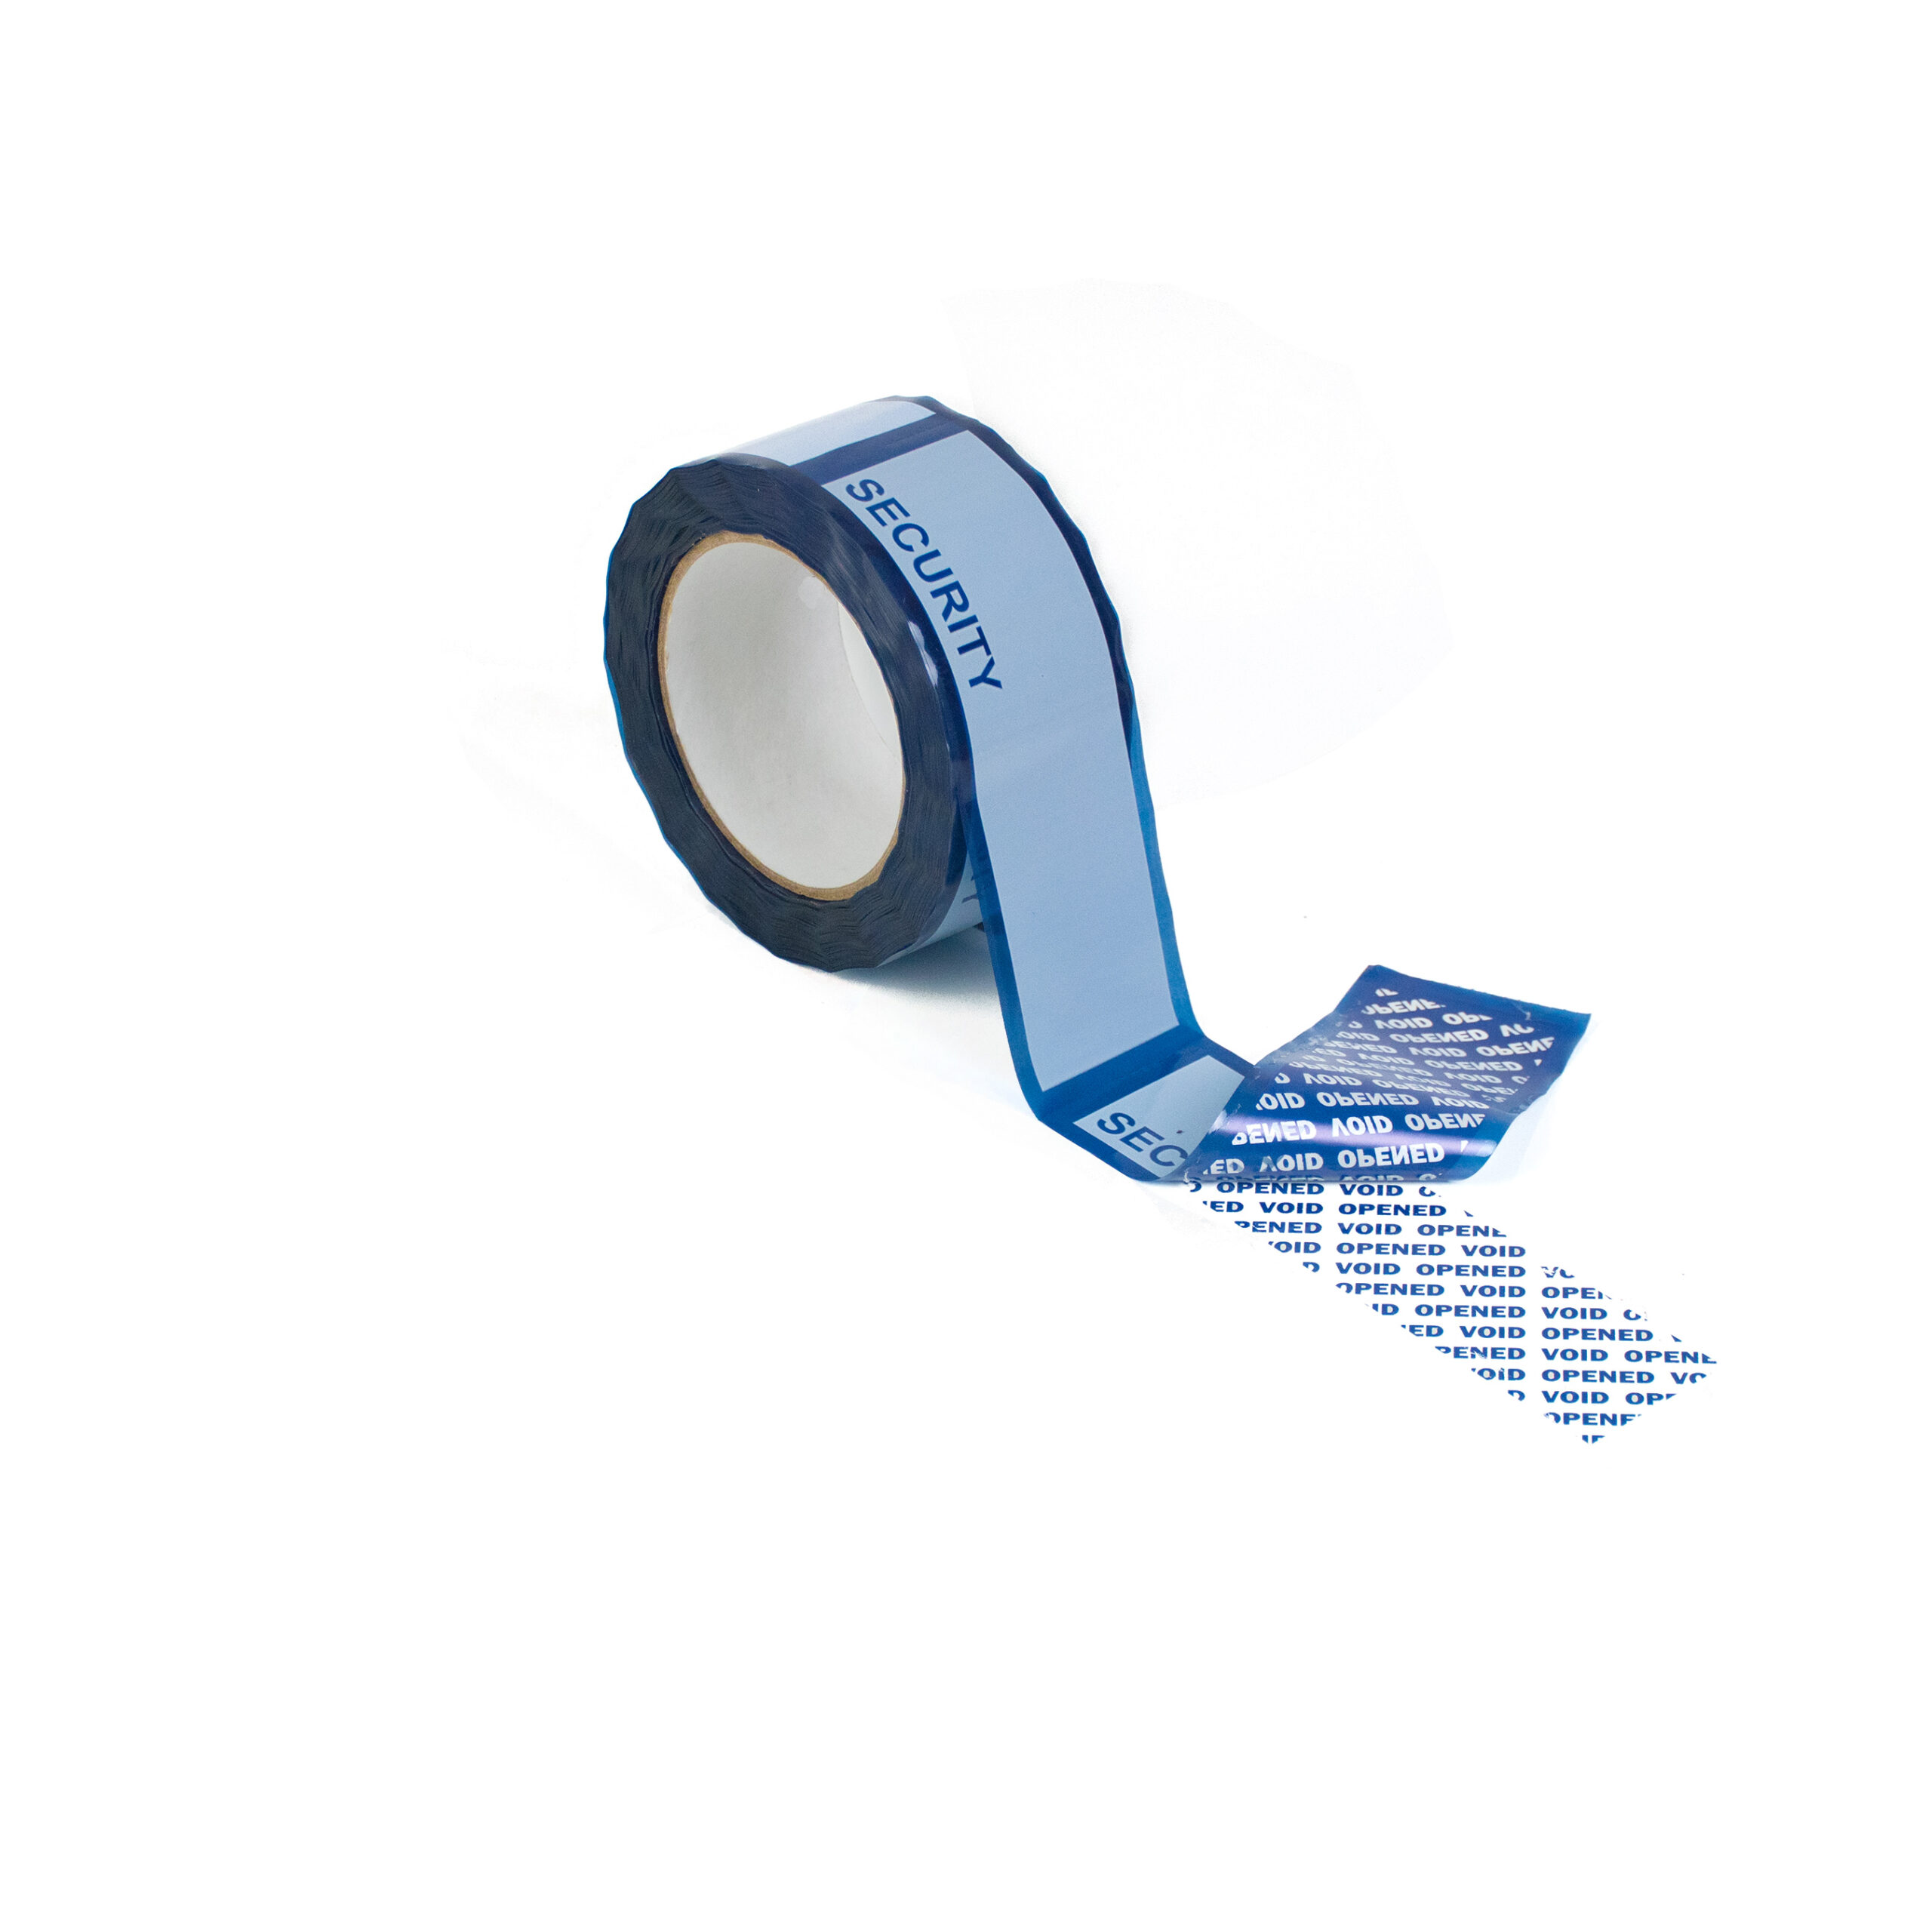 standard blue tamper evident security box tape with perforations